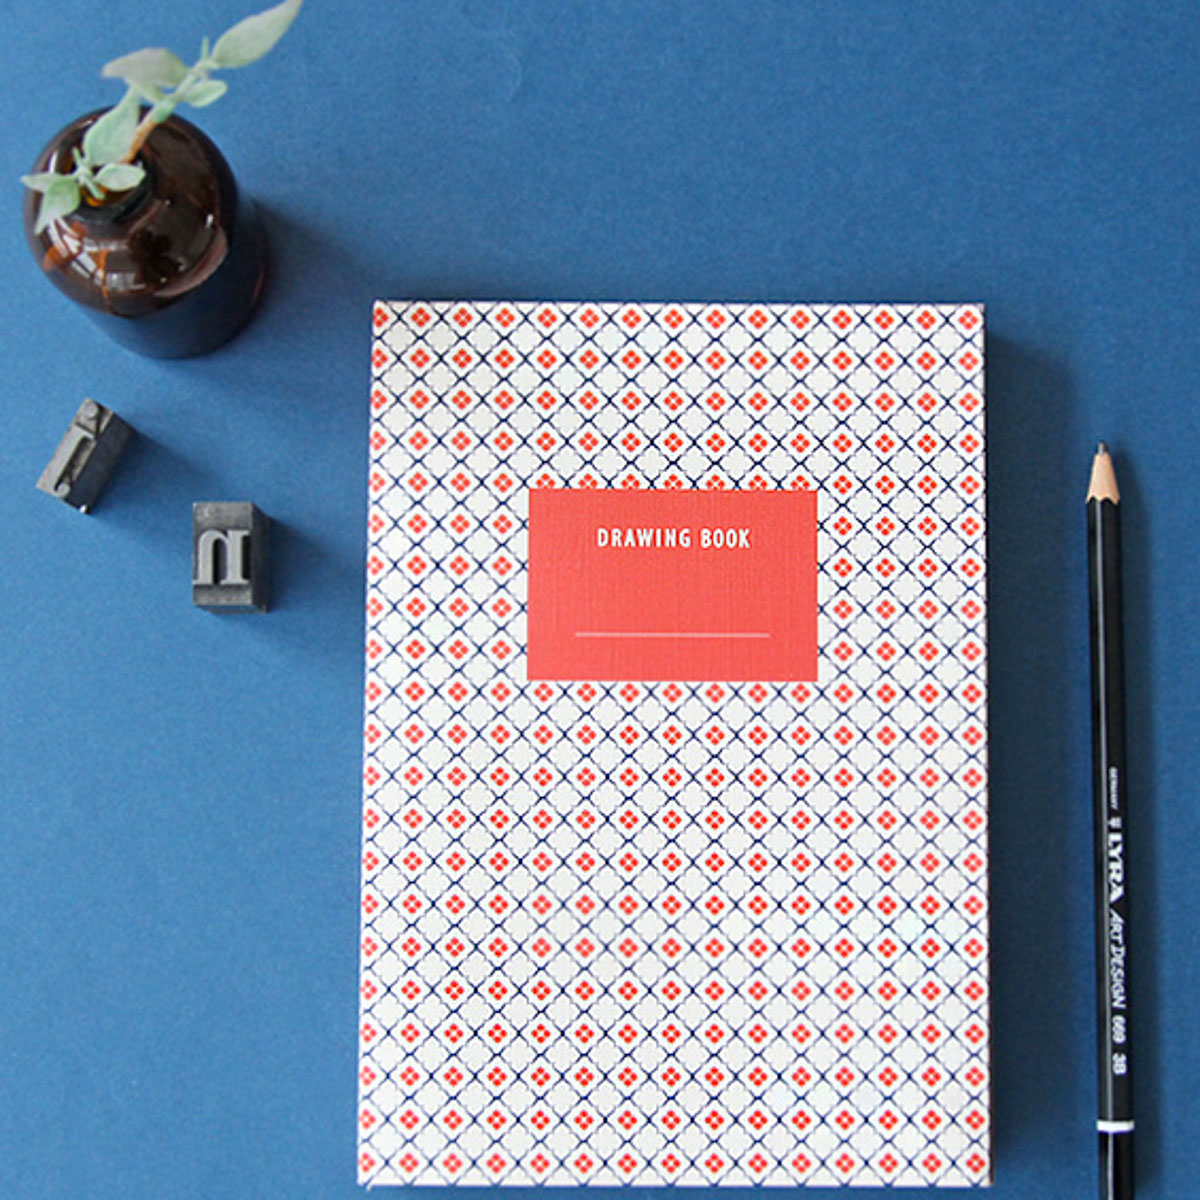 Libreta con figuras geométricas azul y roja de Iconic - Mr.Wonderful